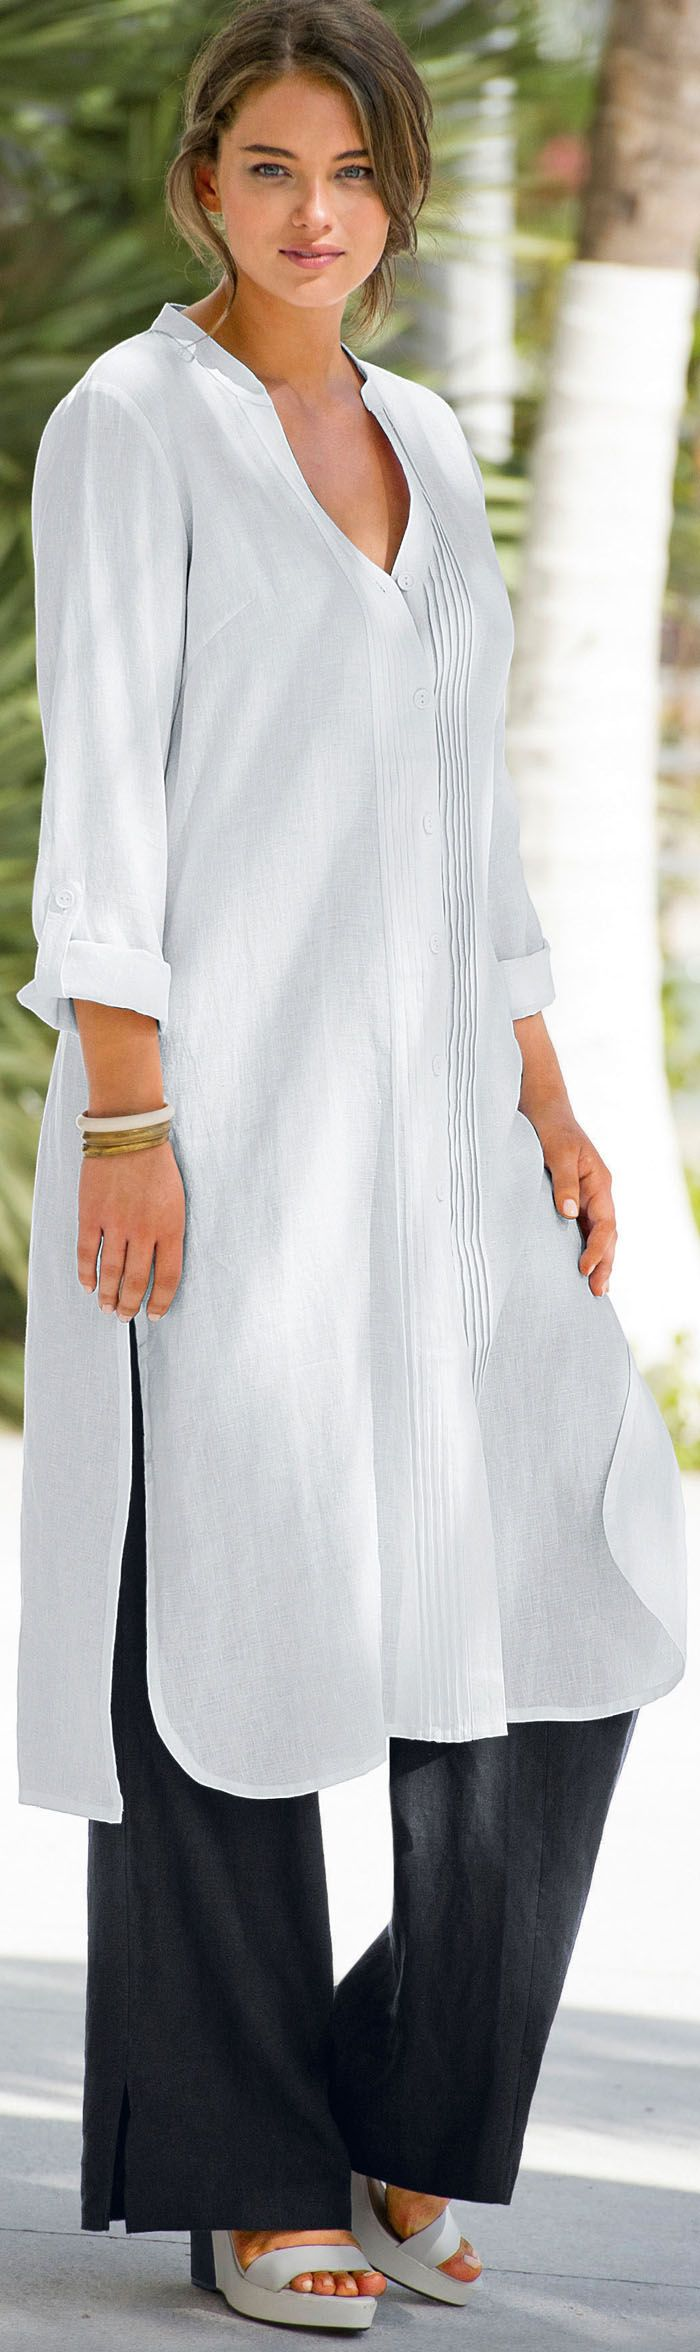 This is similar to a kurti tunic. Beach wedding dress alternatives for boho brides - CLICK HERE TO READ: http://boomerinas.com/2013/05/a-non-dress-for-your-wedding-alternatives-for-indie-brides/